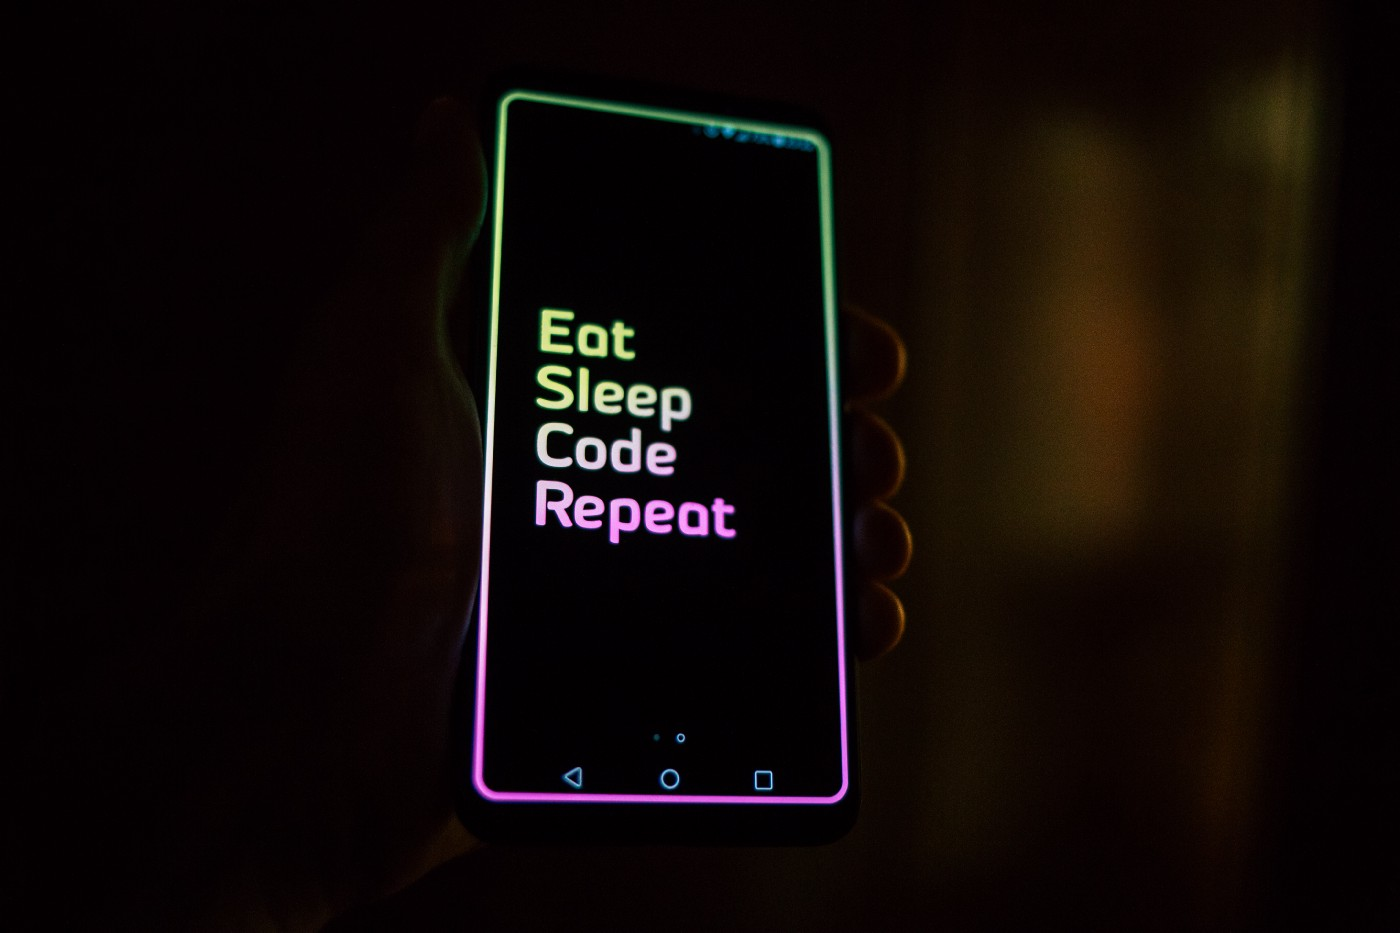 """A smartphone homescreen with the text """"Eat Sleep Code Repeat"""" displayed."""